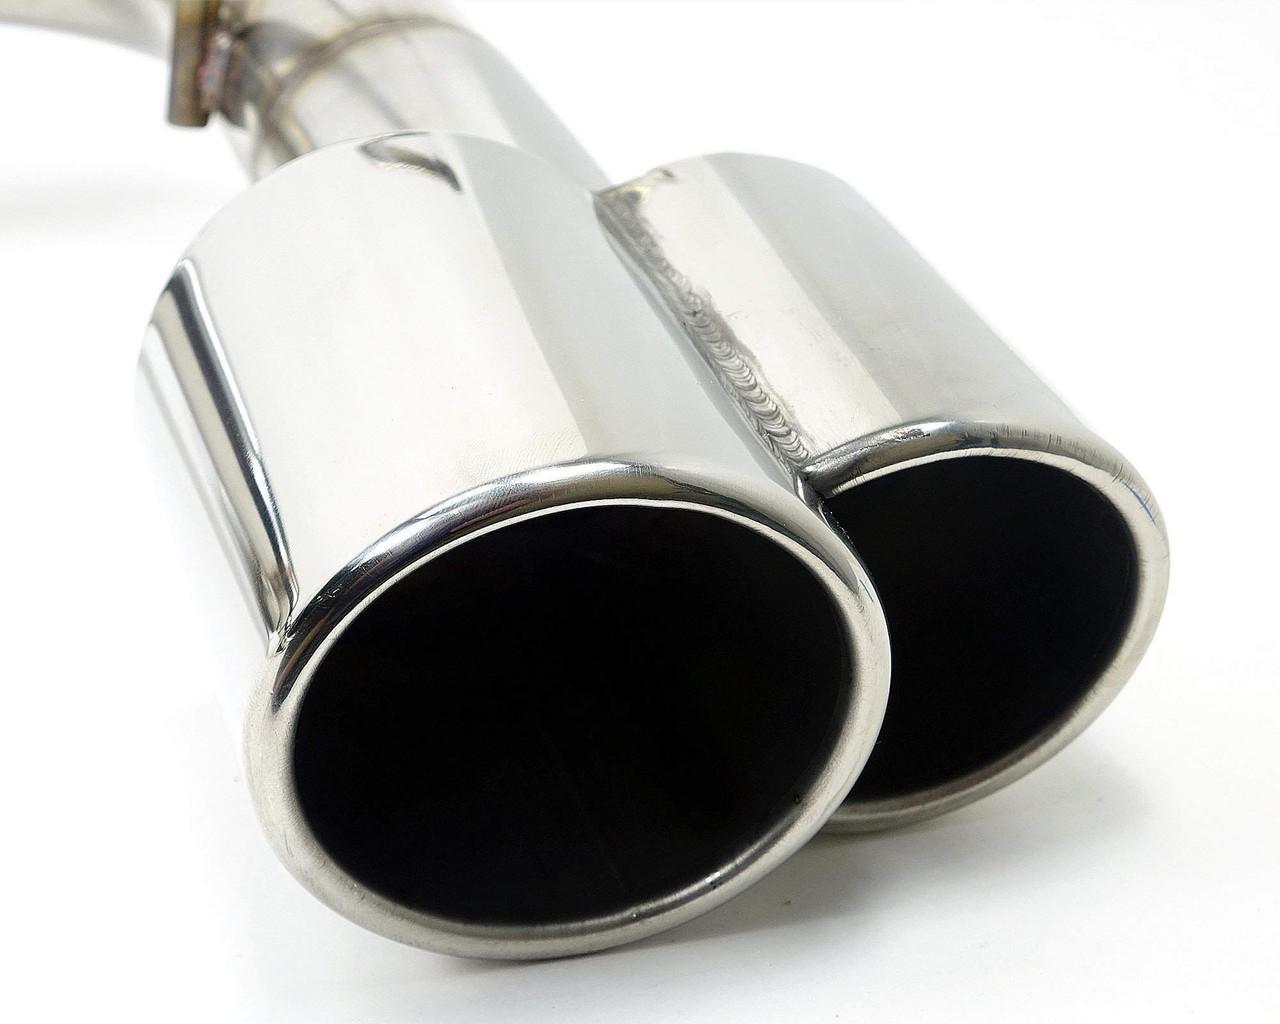 124 Spider Stainless Exhaust - Choose resonated or non resonated option - Auto Ricambi Fits 2017on FIAT 124 Spider and Spider Abarth